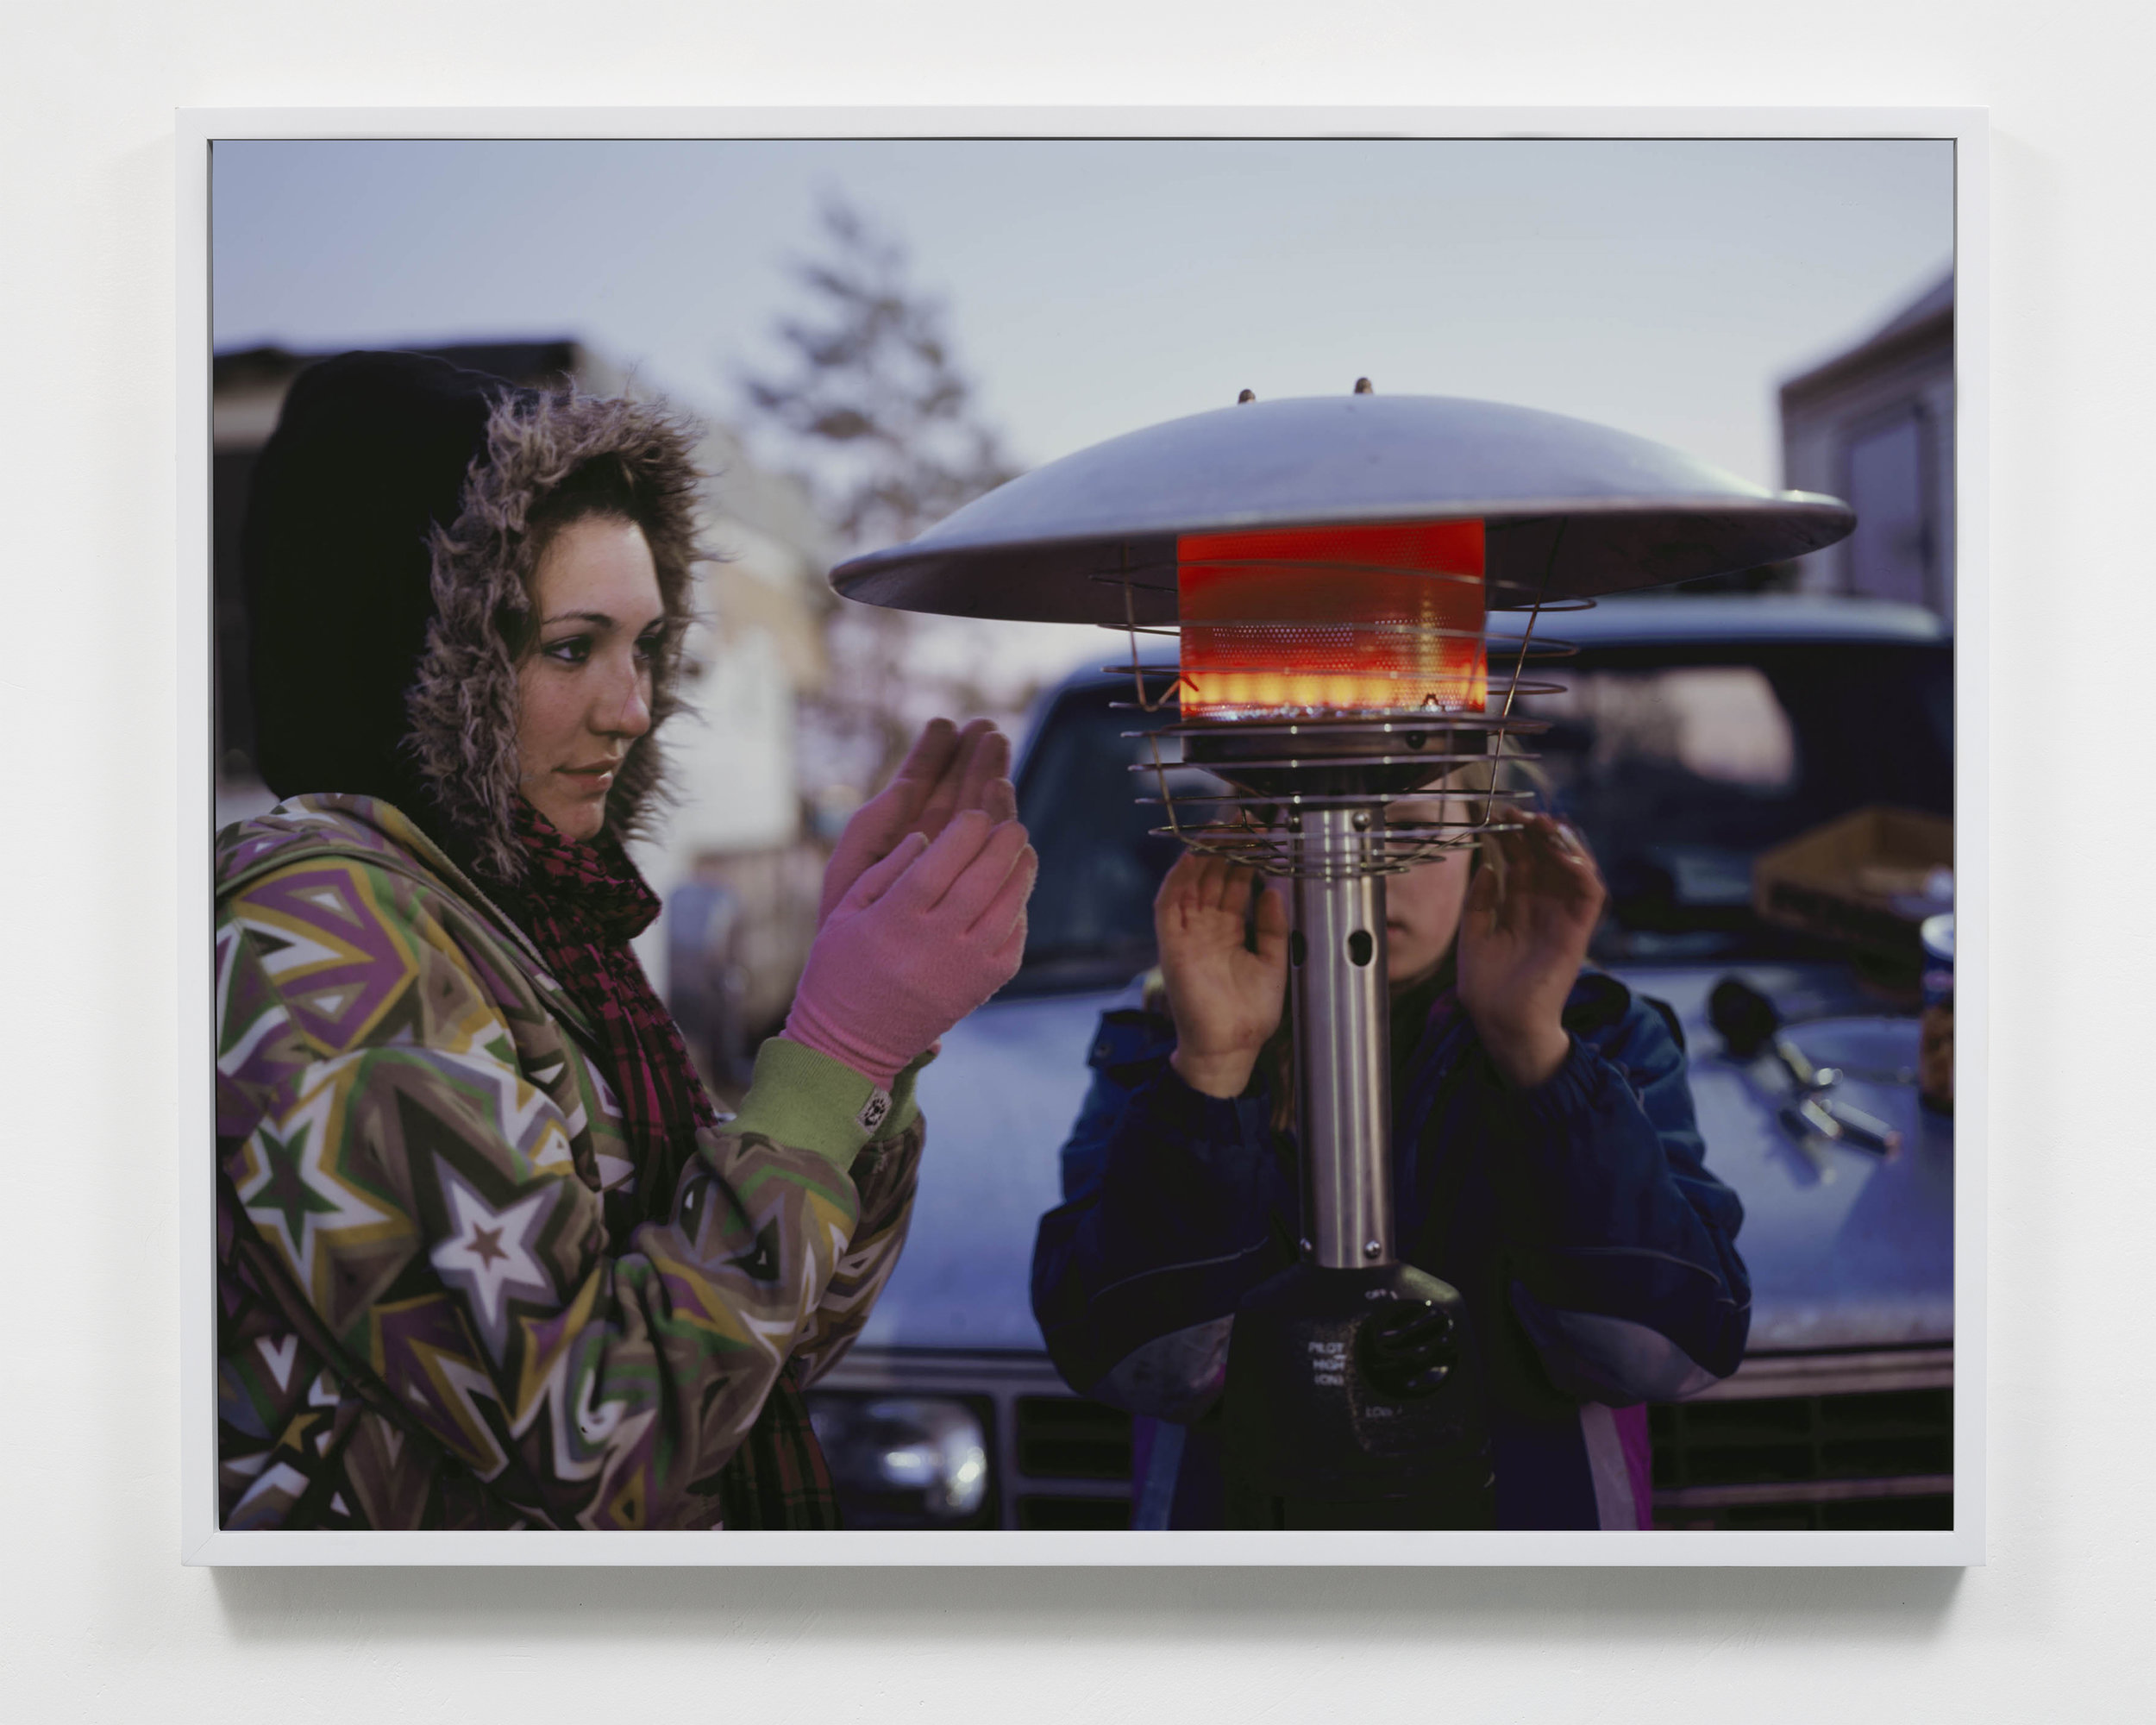 Arizona family with heater in Walmart parking lot, Williston, North Dakota, 2011.